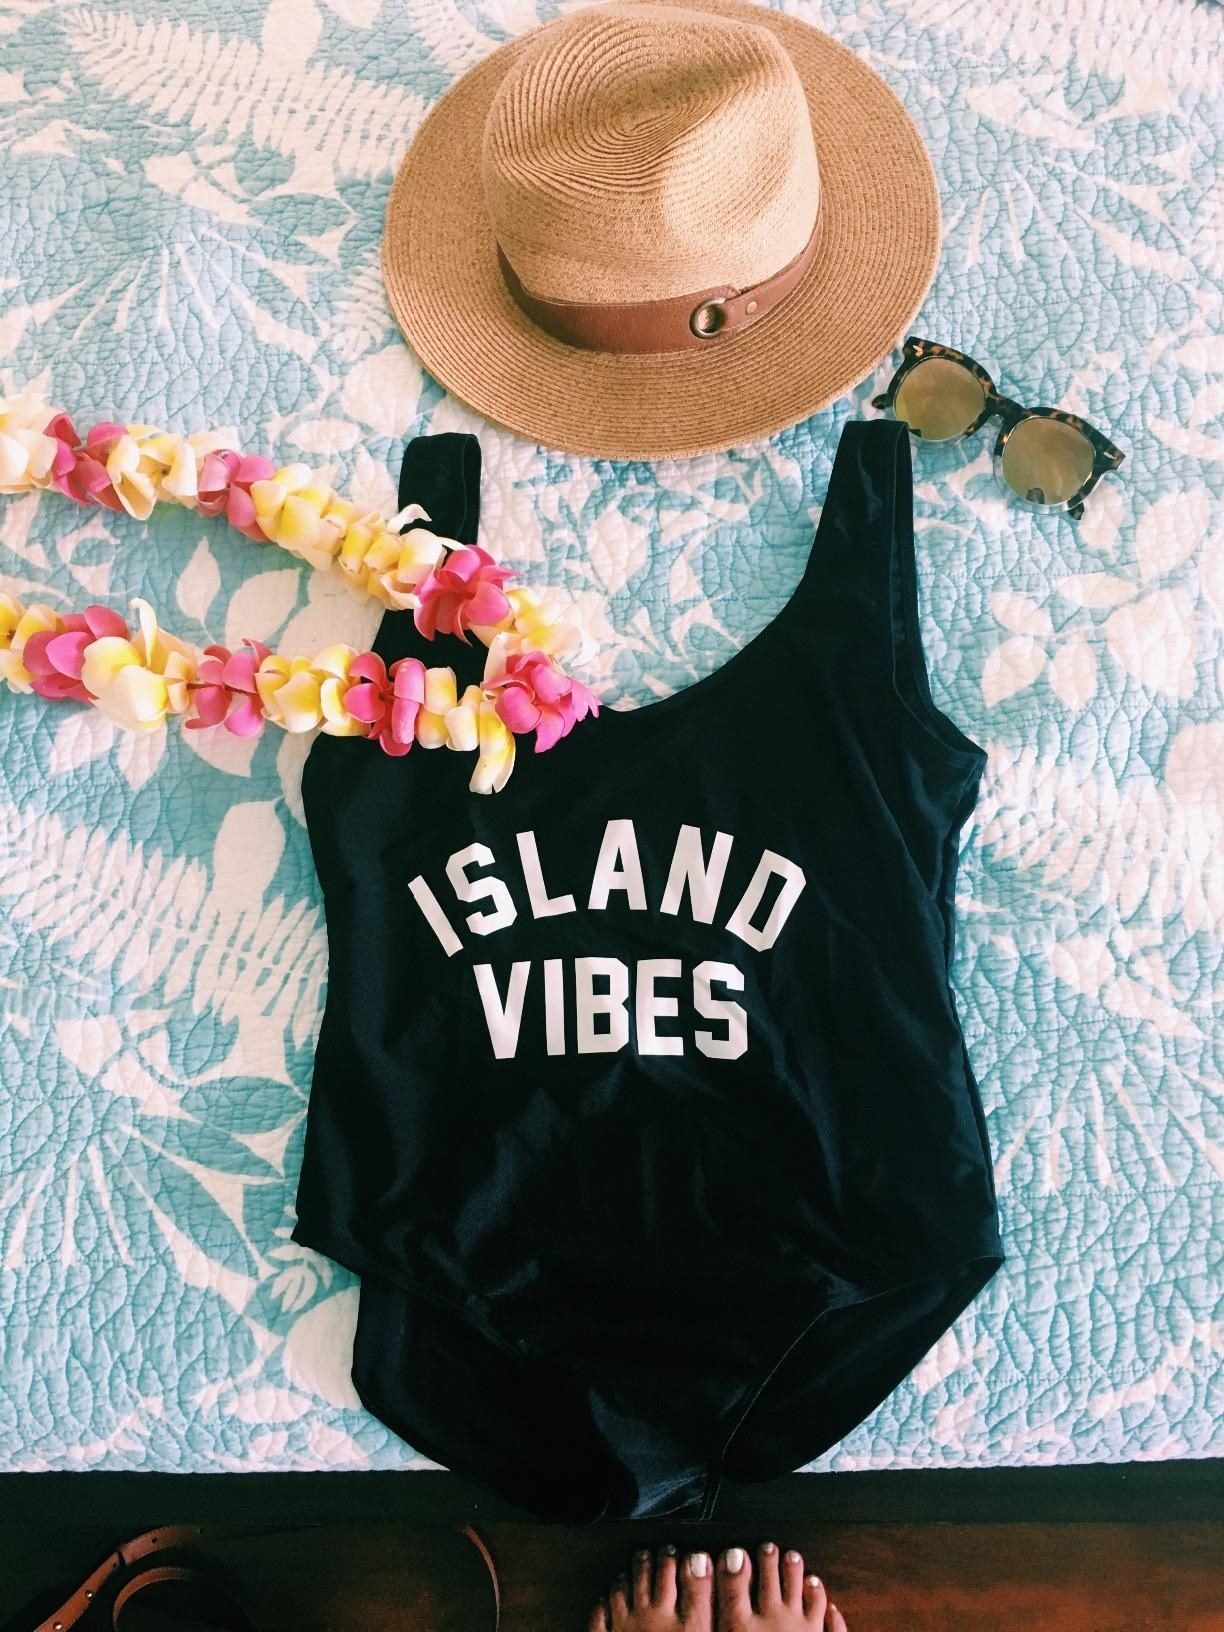 swimsuit that says island vibes